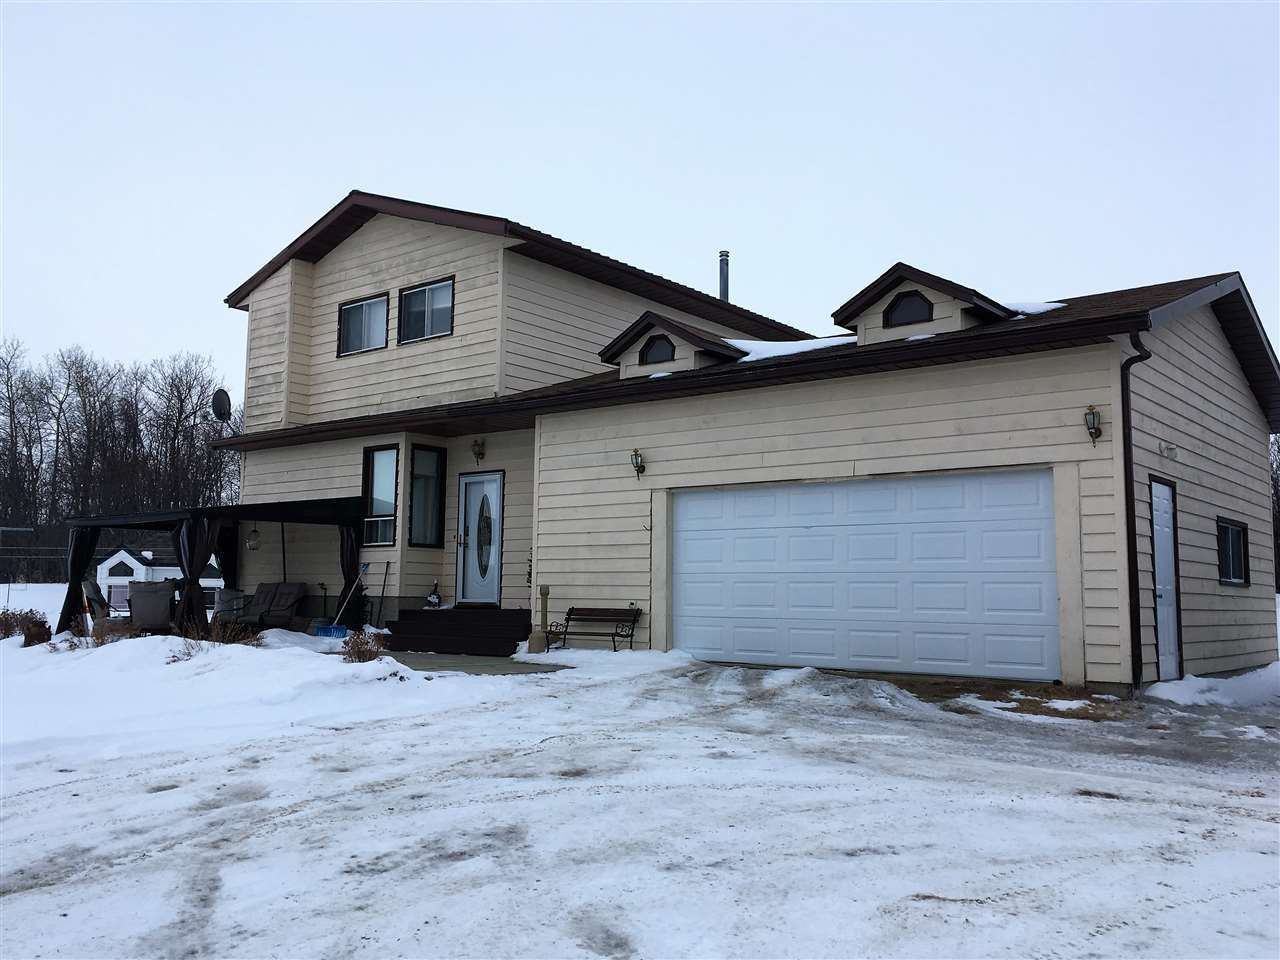 Main Photo: 222057 Twp Rd 450: Rural Wetaskiwin County House for sale : MLS®# E4131331